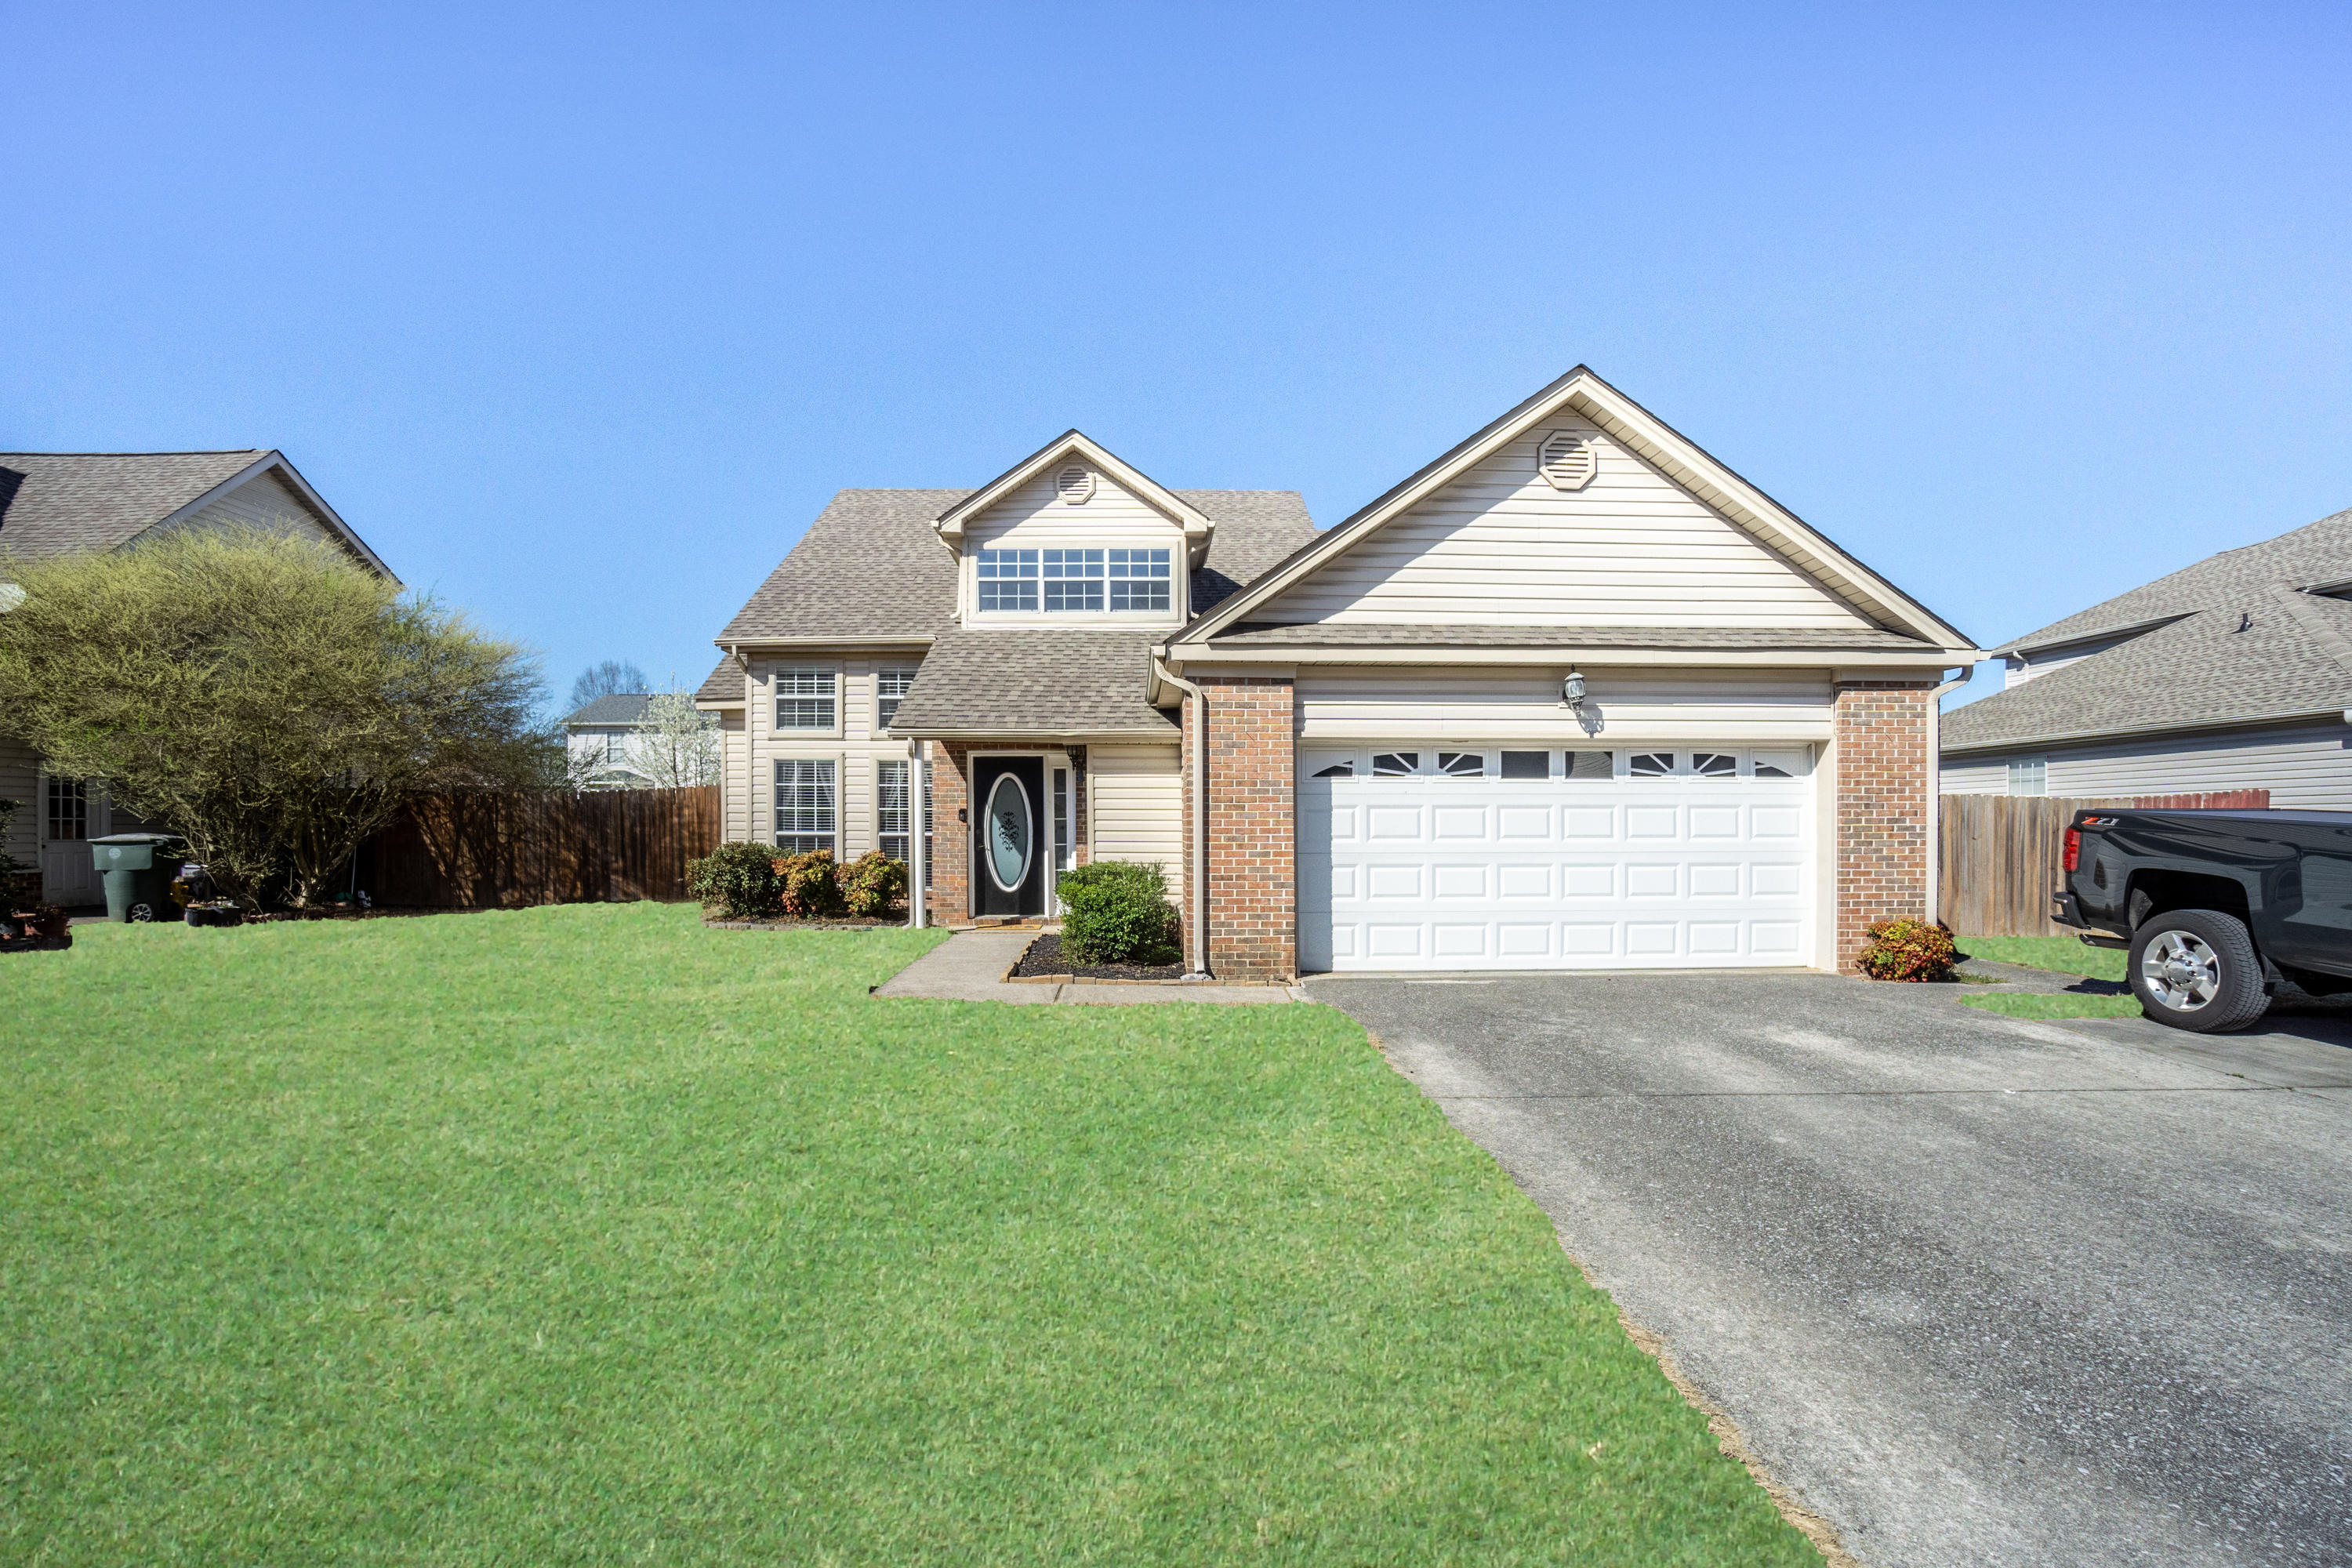 1570 Chase Meadows Cir, Hixson, TN 37343